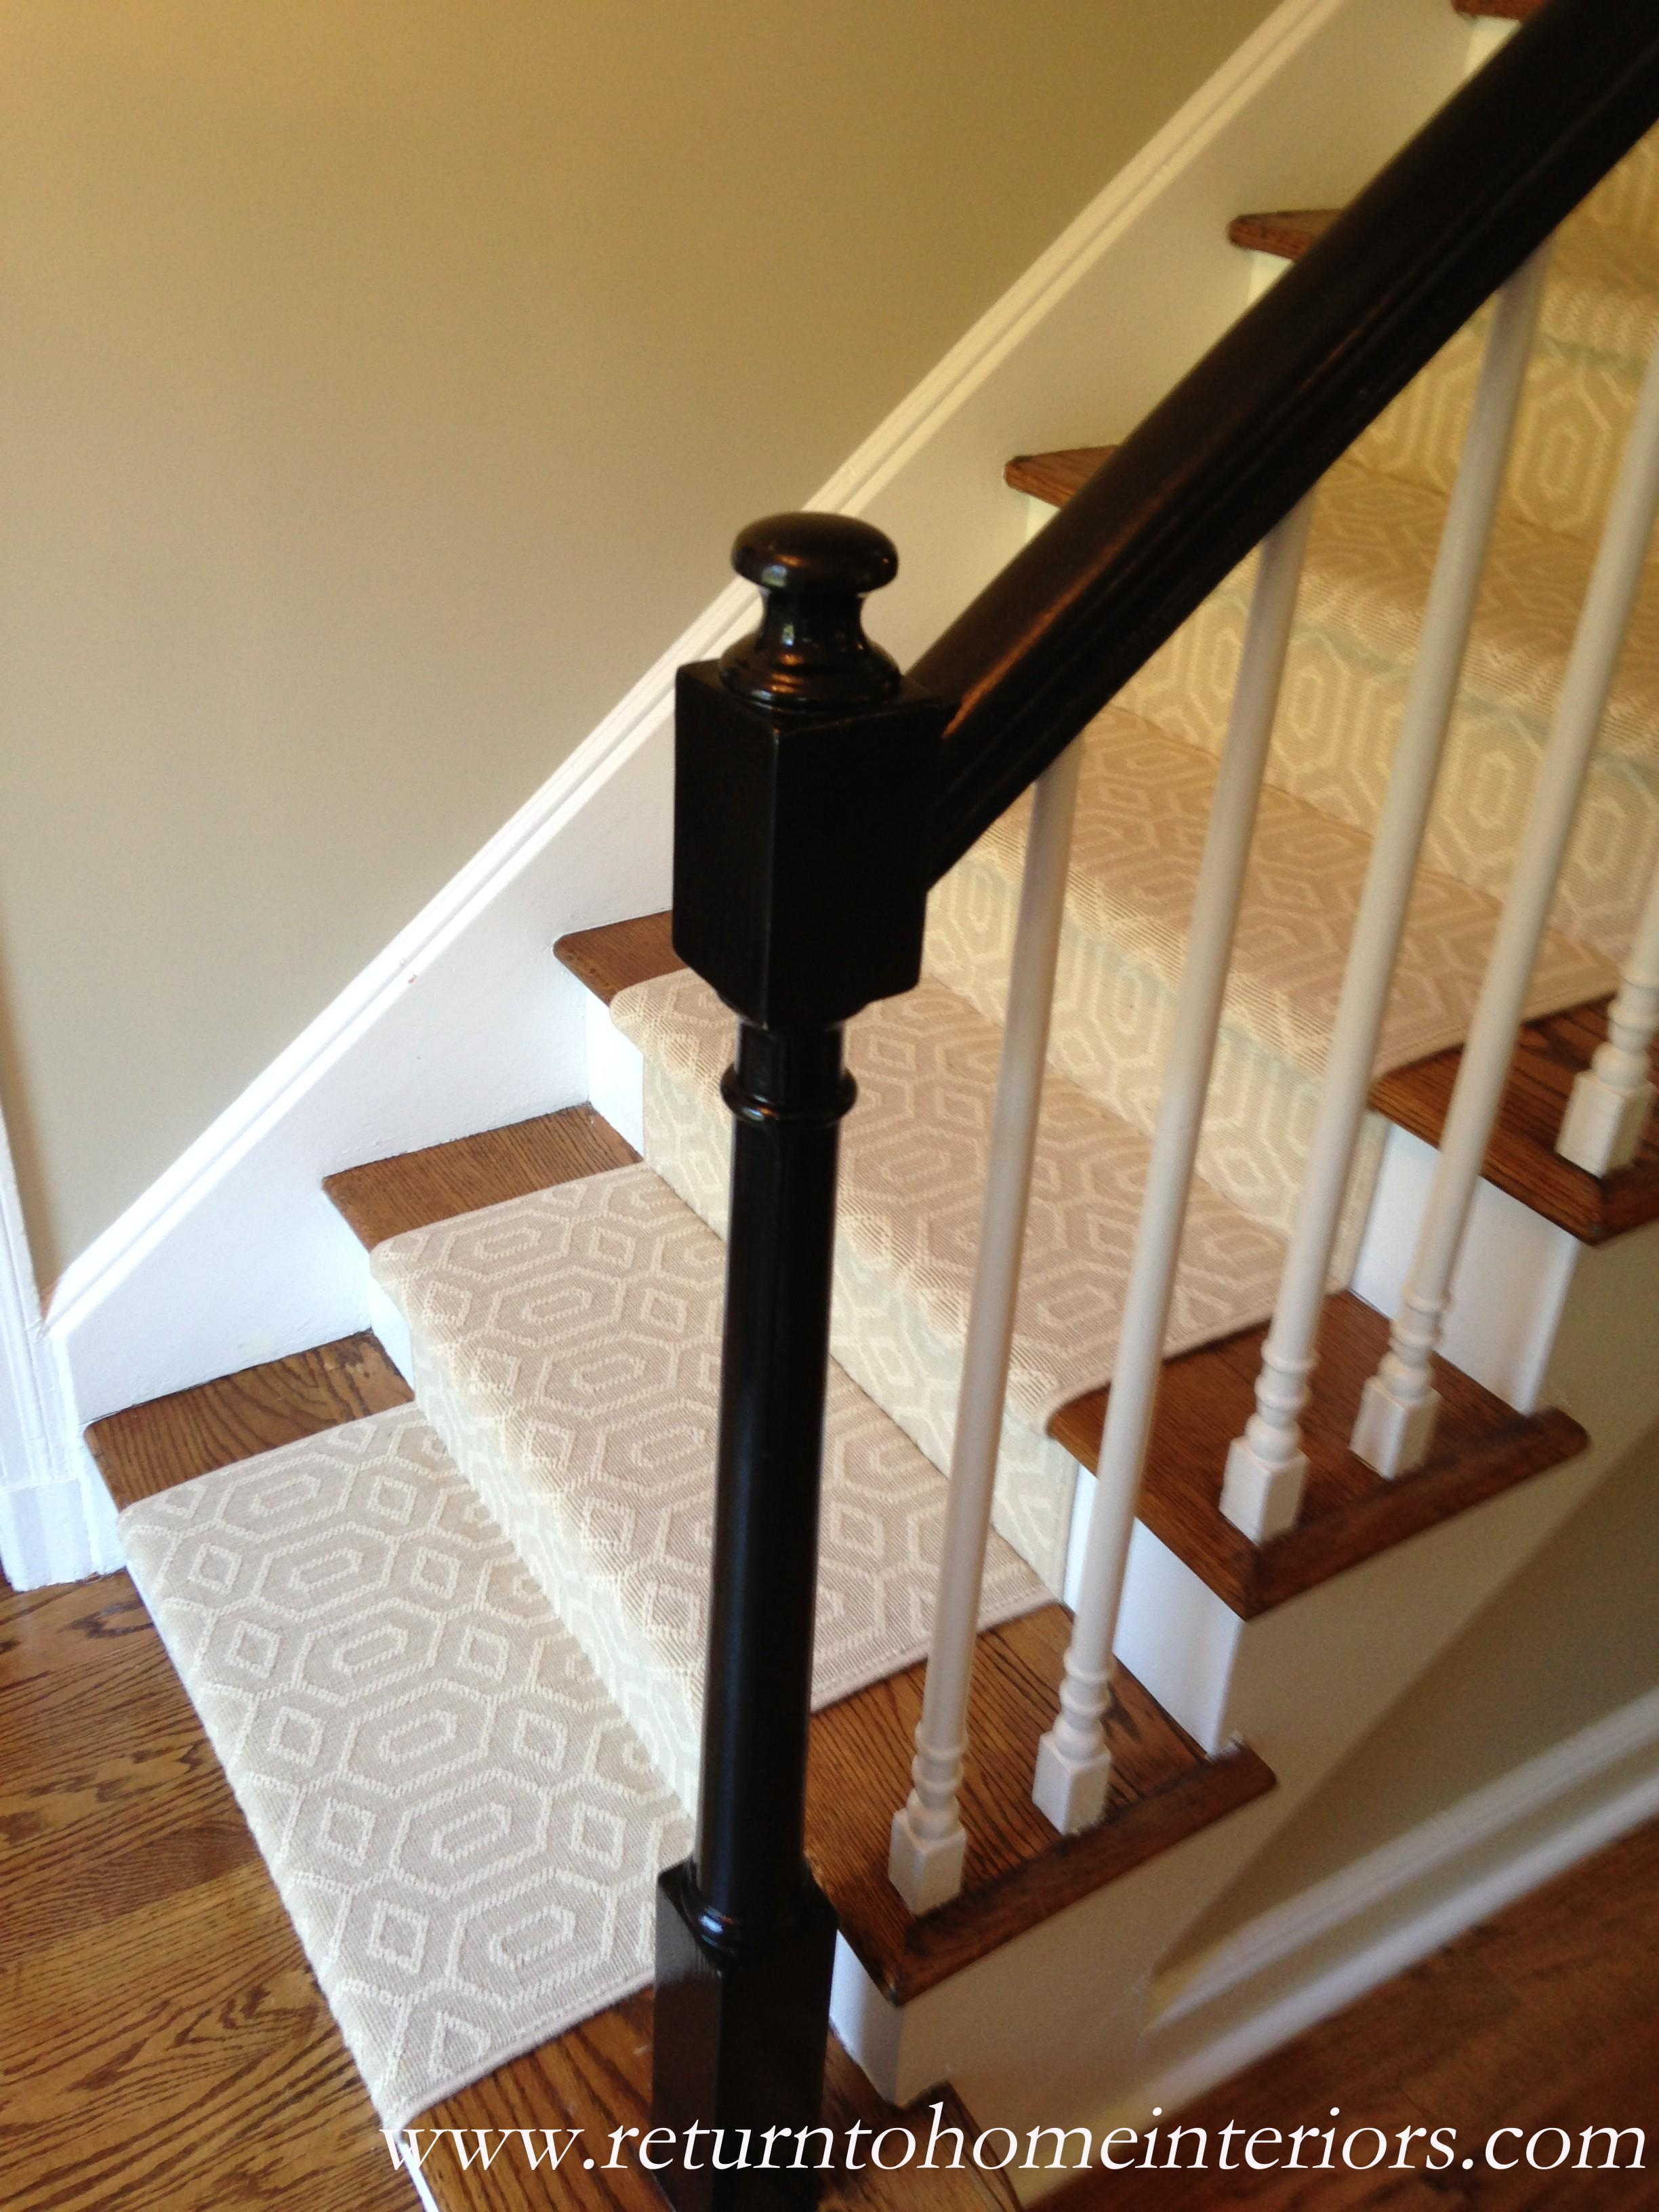 Stair Banister Choosing A Stair Runner: Some Inspiration And Lessons